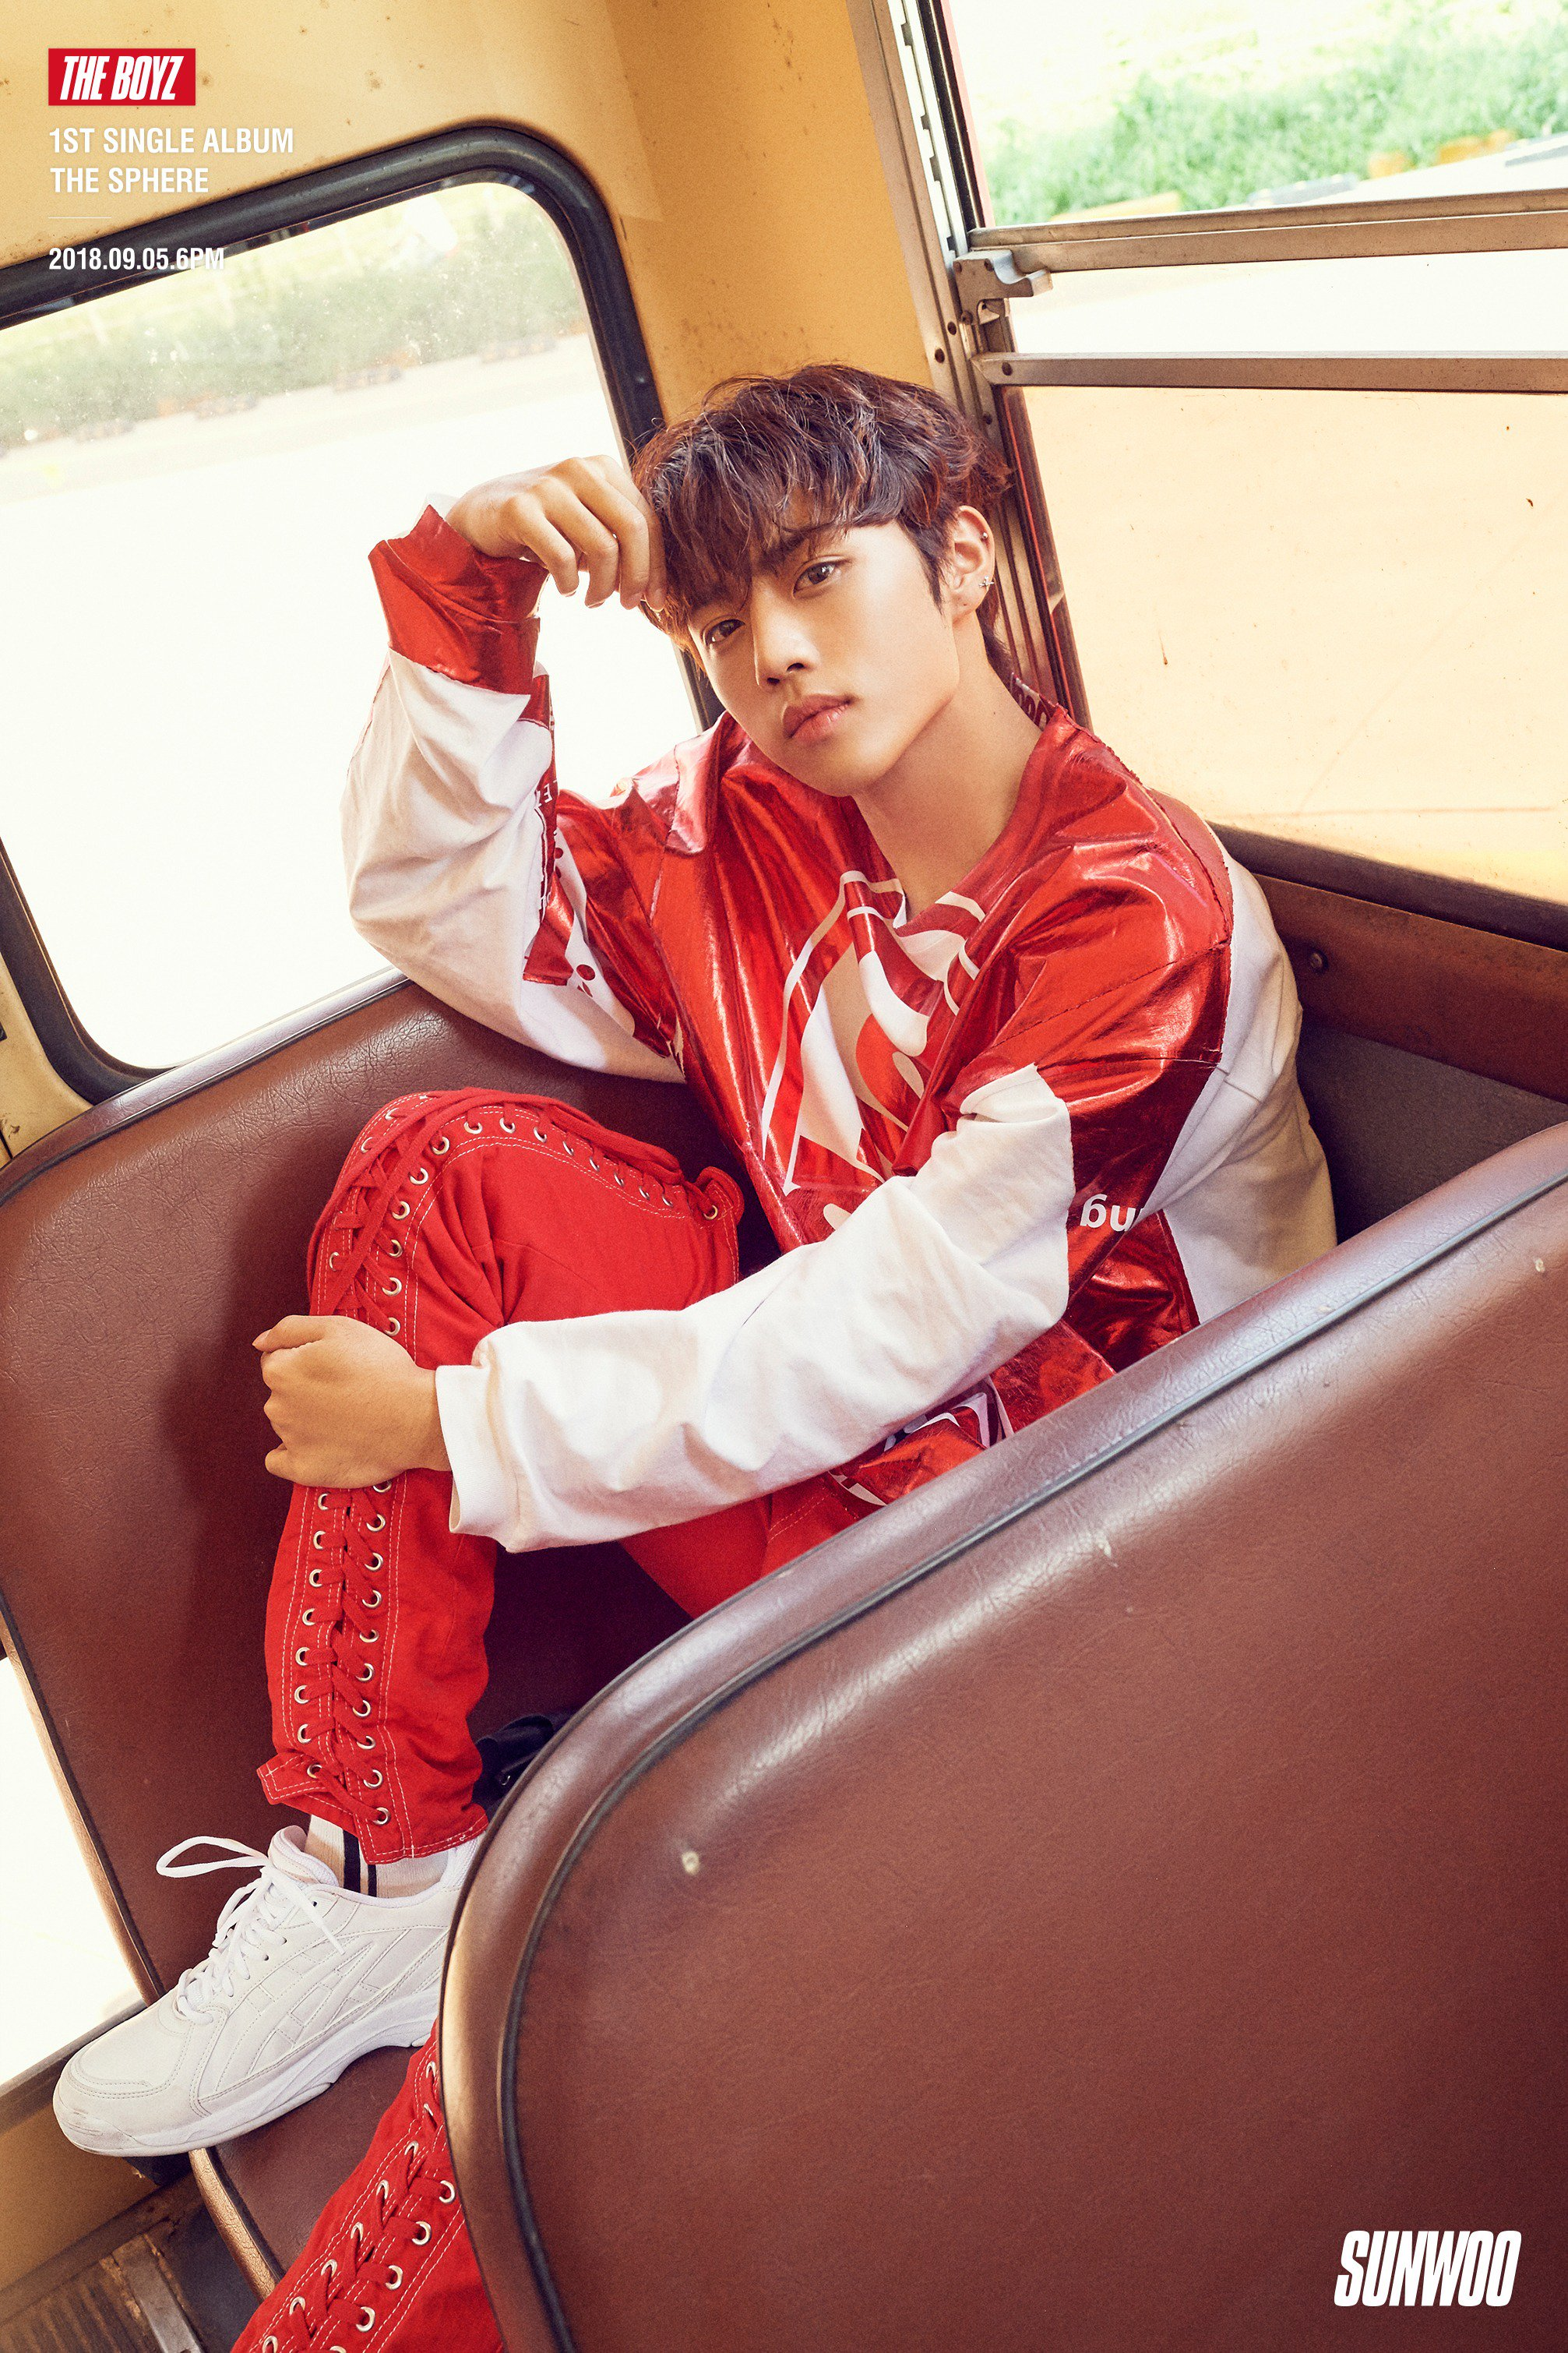 the boyz photos teasers de younghoon jacob et sunwoo